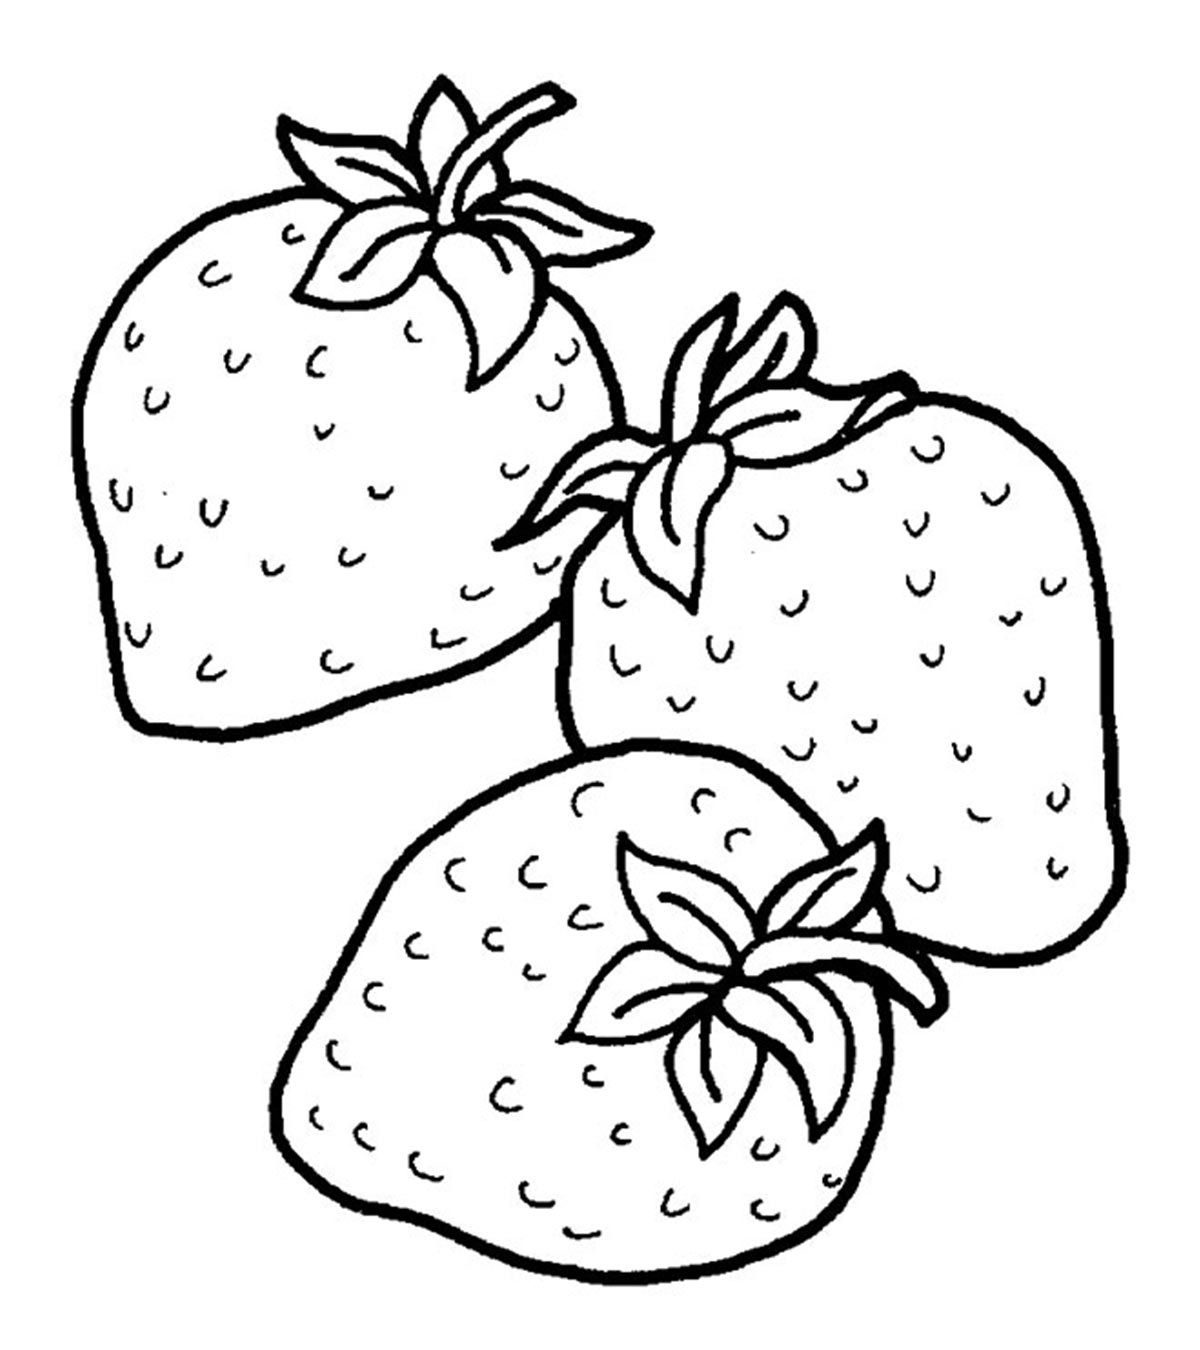 Top 15 Strawberry Coloring Pages For Your Little One